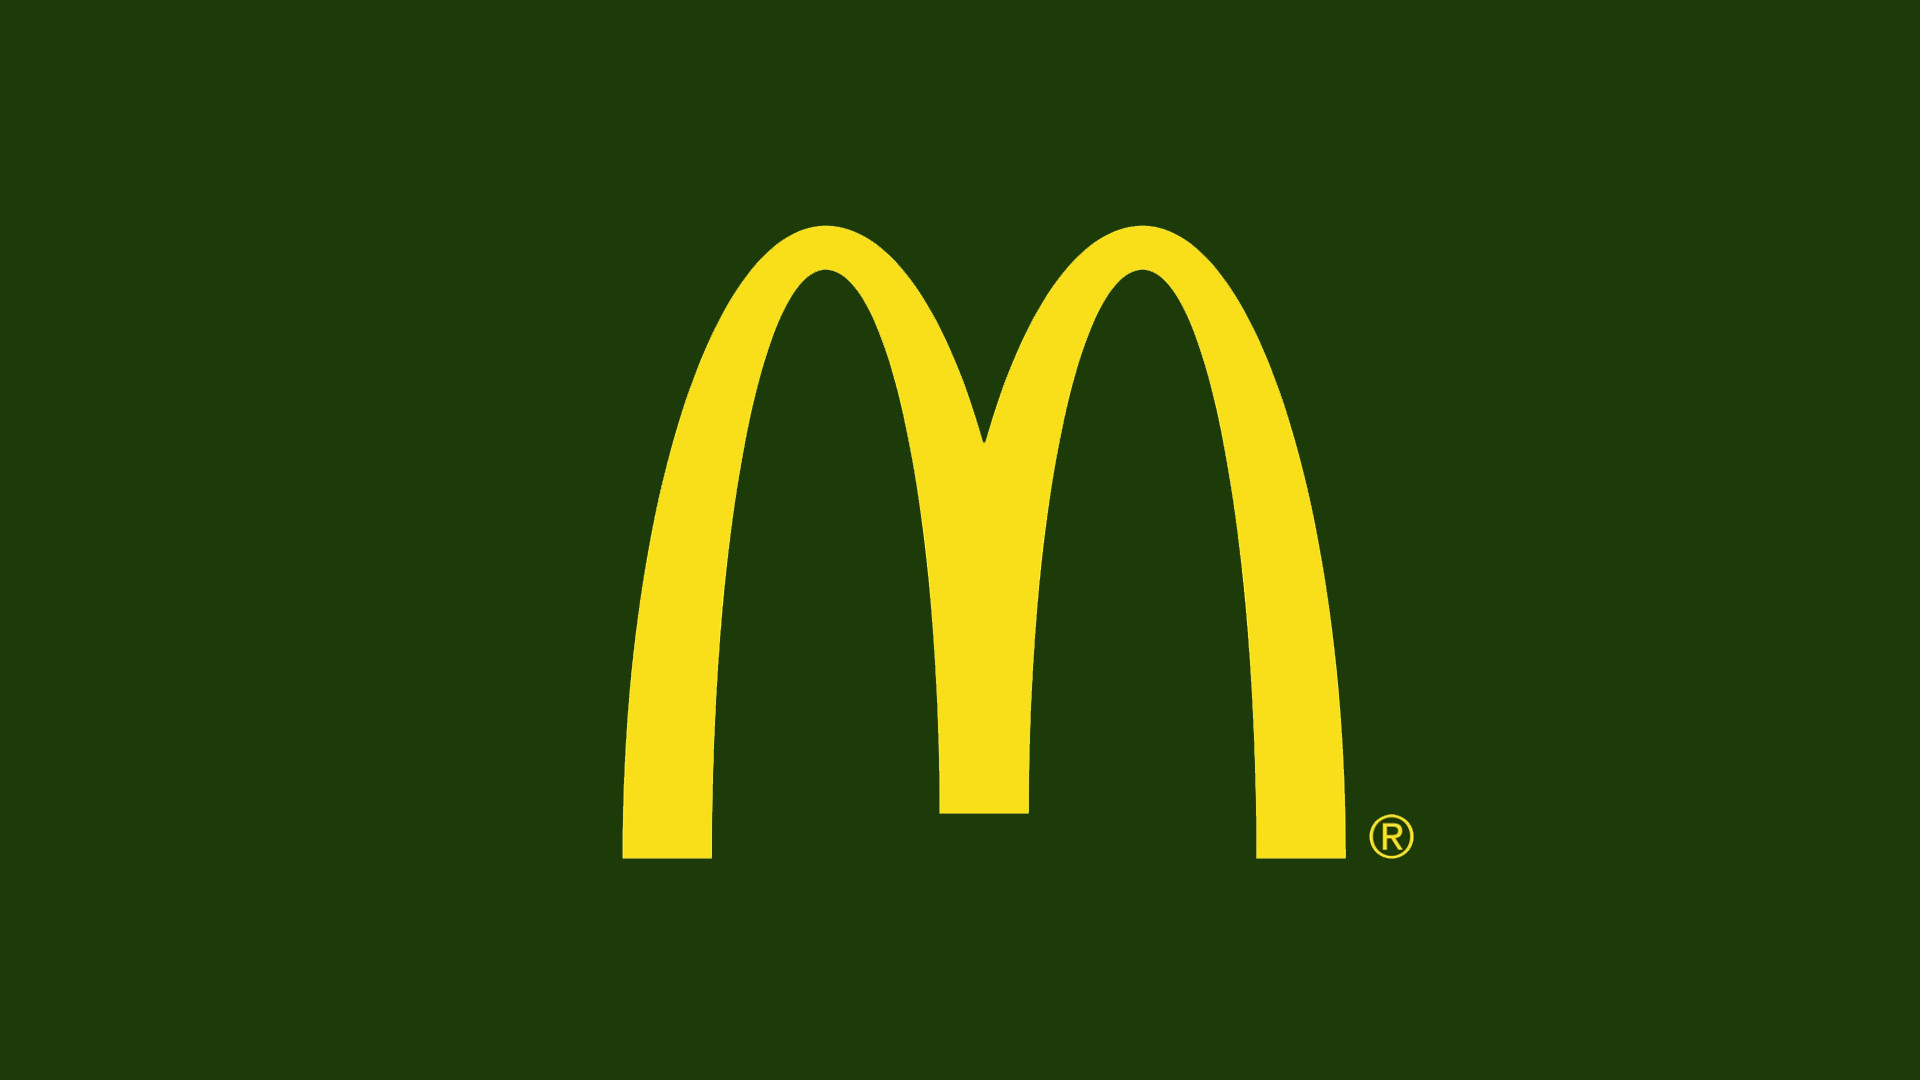 mcdonalds logo desktop wallpaper 62678